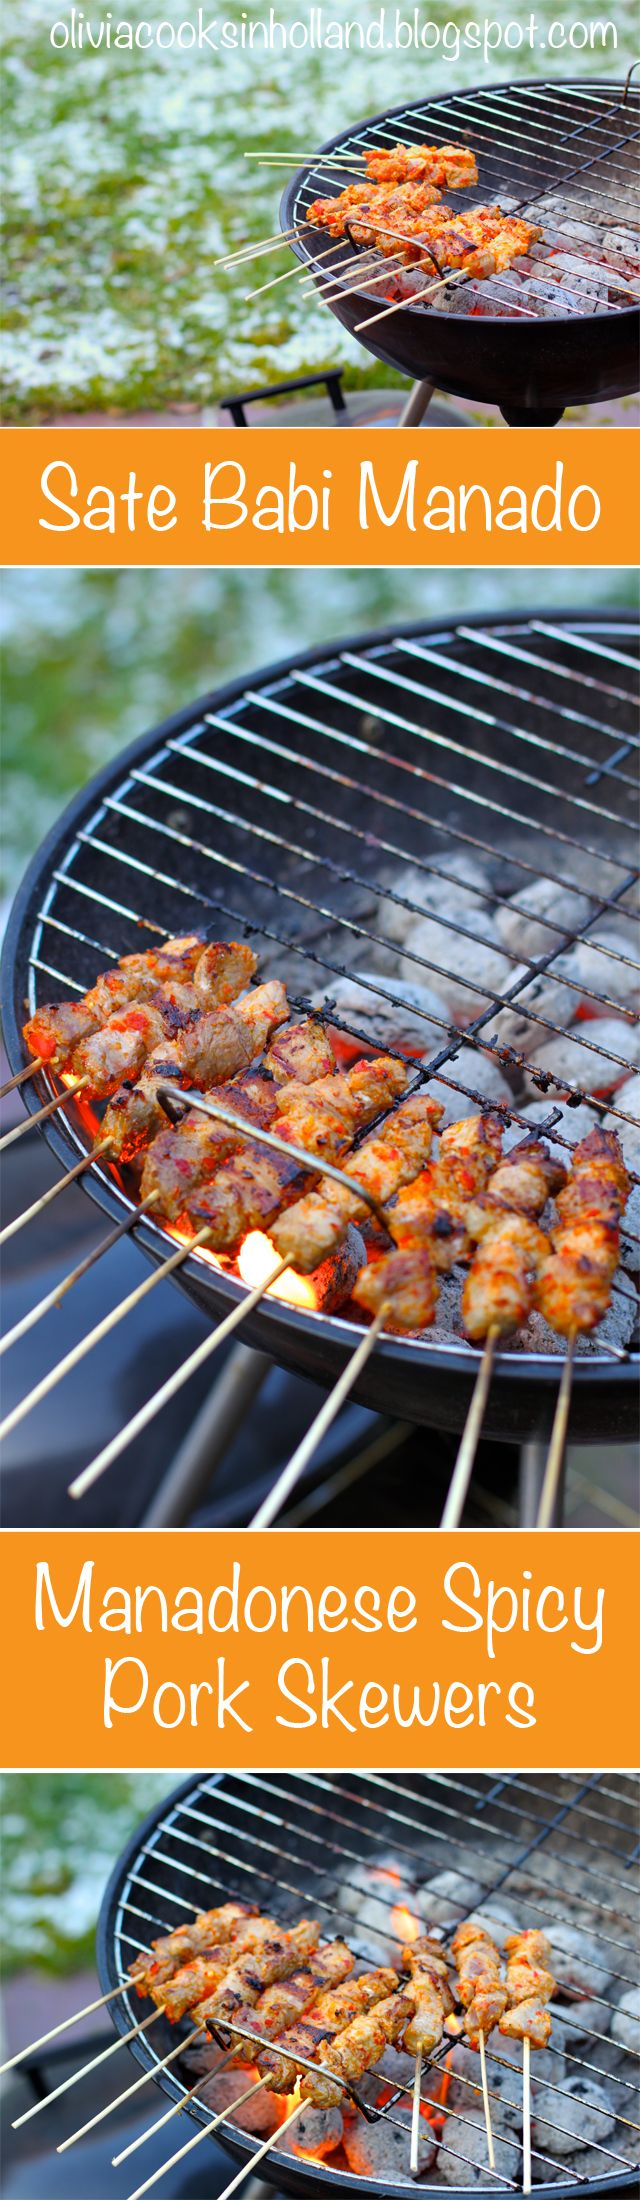 This pork satay is a recipe to save for summer barbecue, it's different from your barbecue sauce which are usually sweet. This one is spicy! And pairs great with a cold beer :)